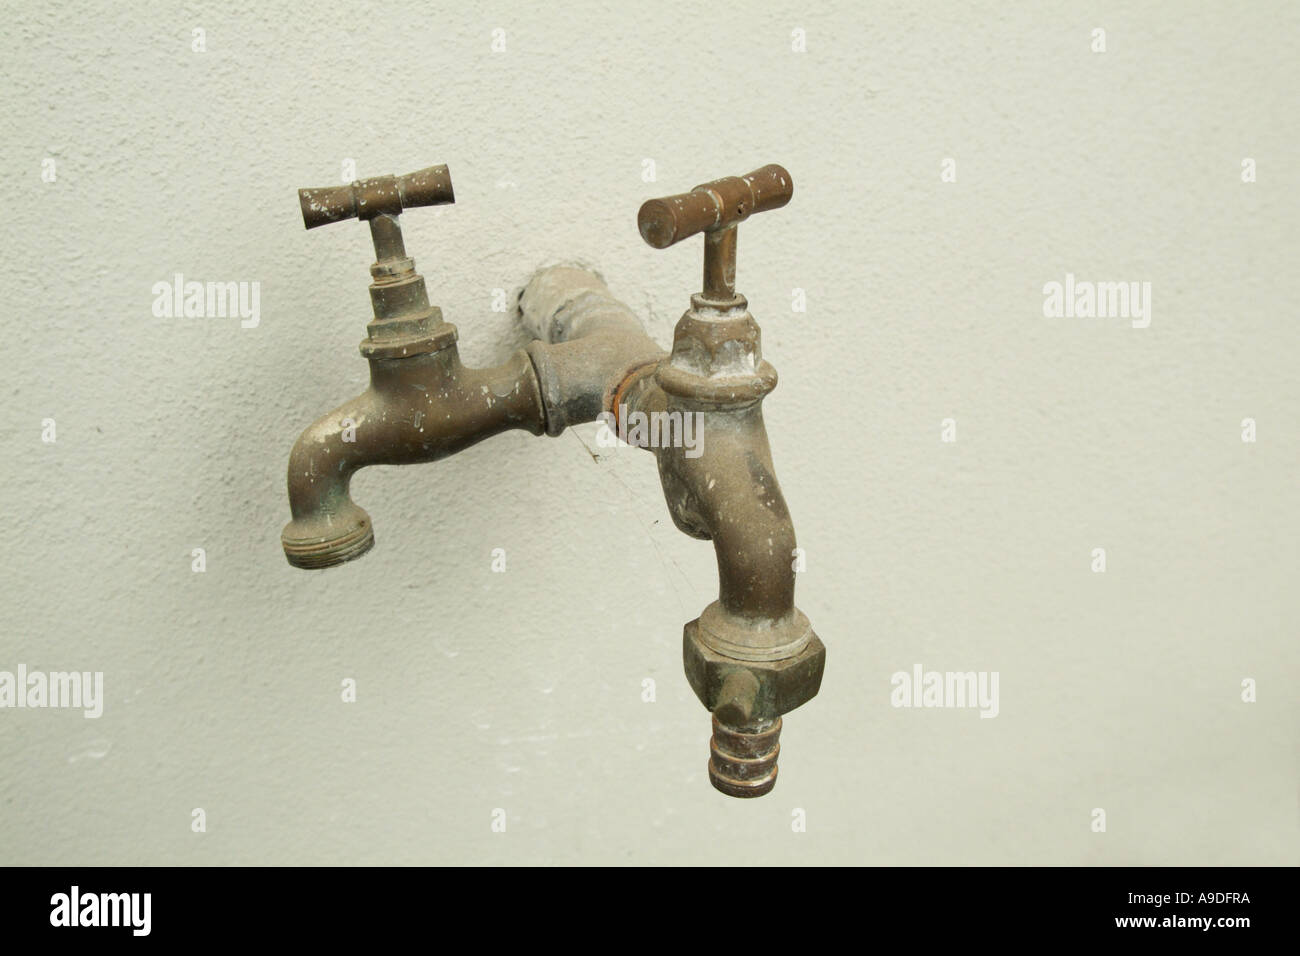 taps without running water - Stock Image